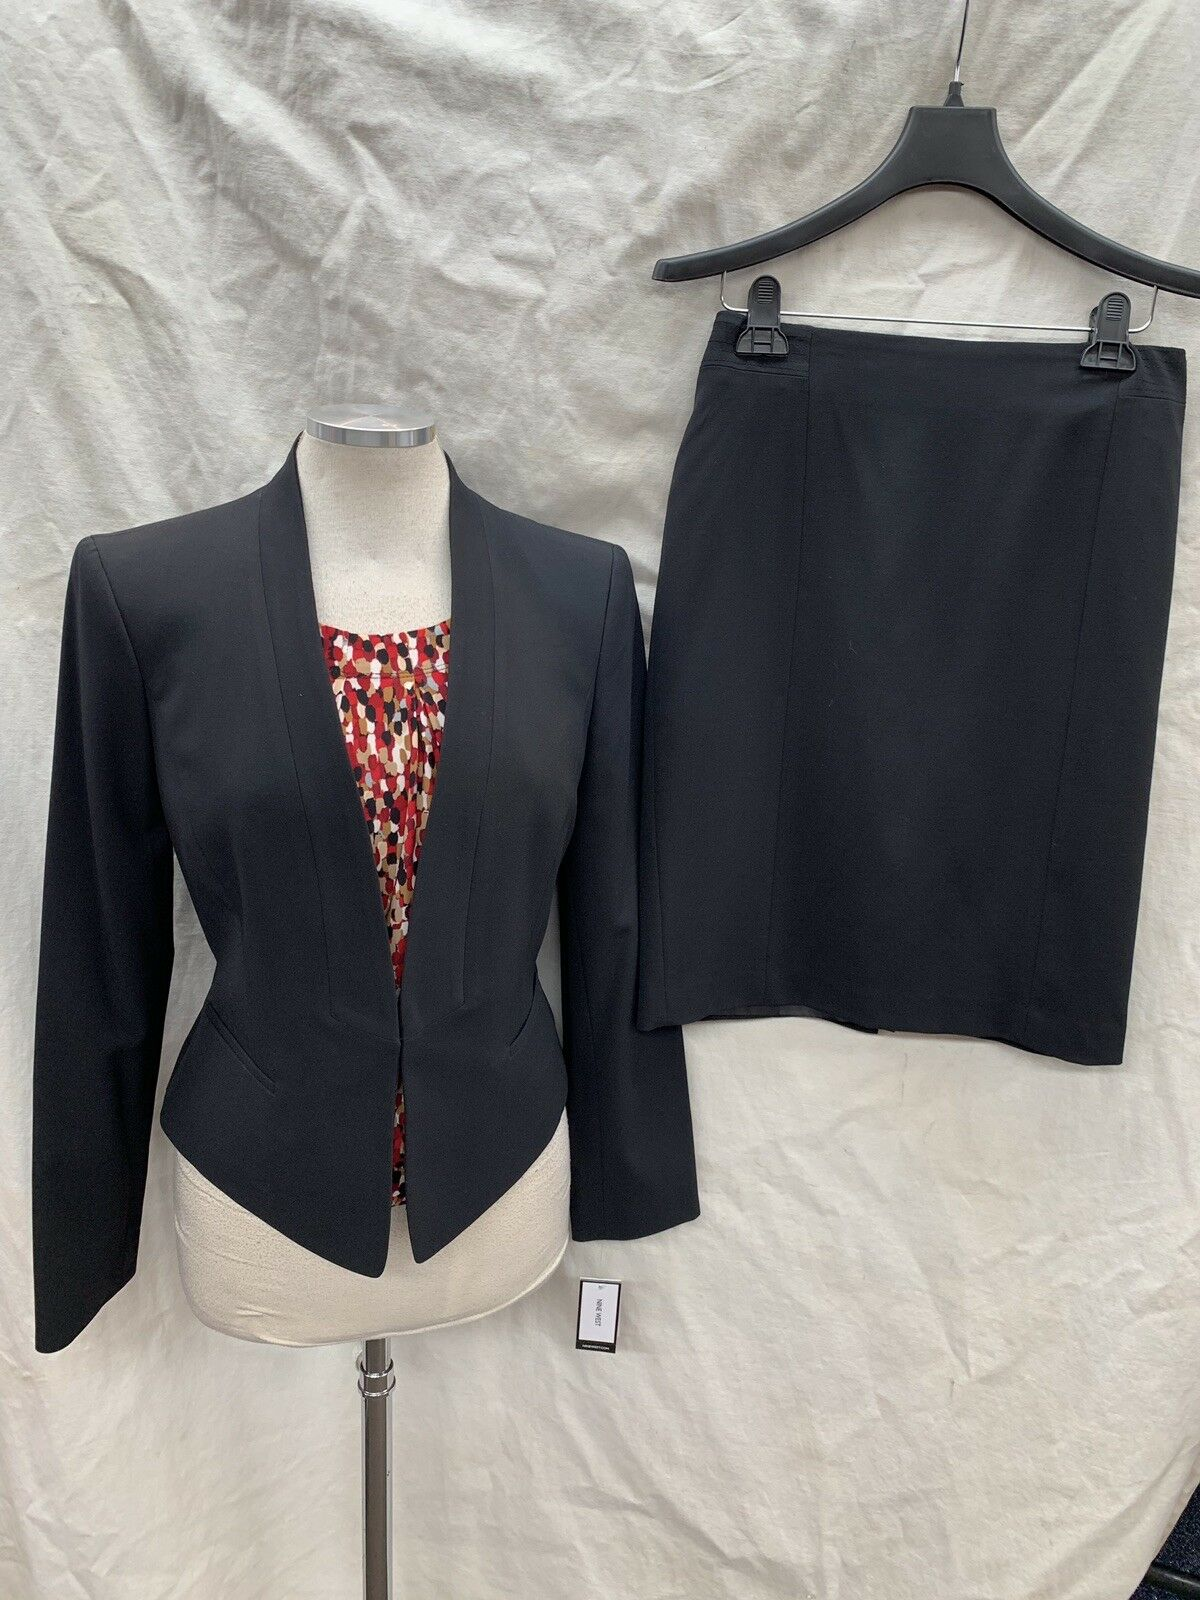 NINE WEST SKIRT SUIT NEW WITH TAG RETAIL 240 SIZE 6 LINED SKIRT LENGTH 23  LINED